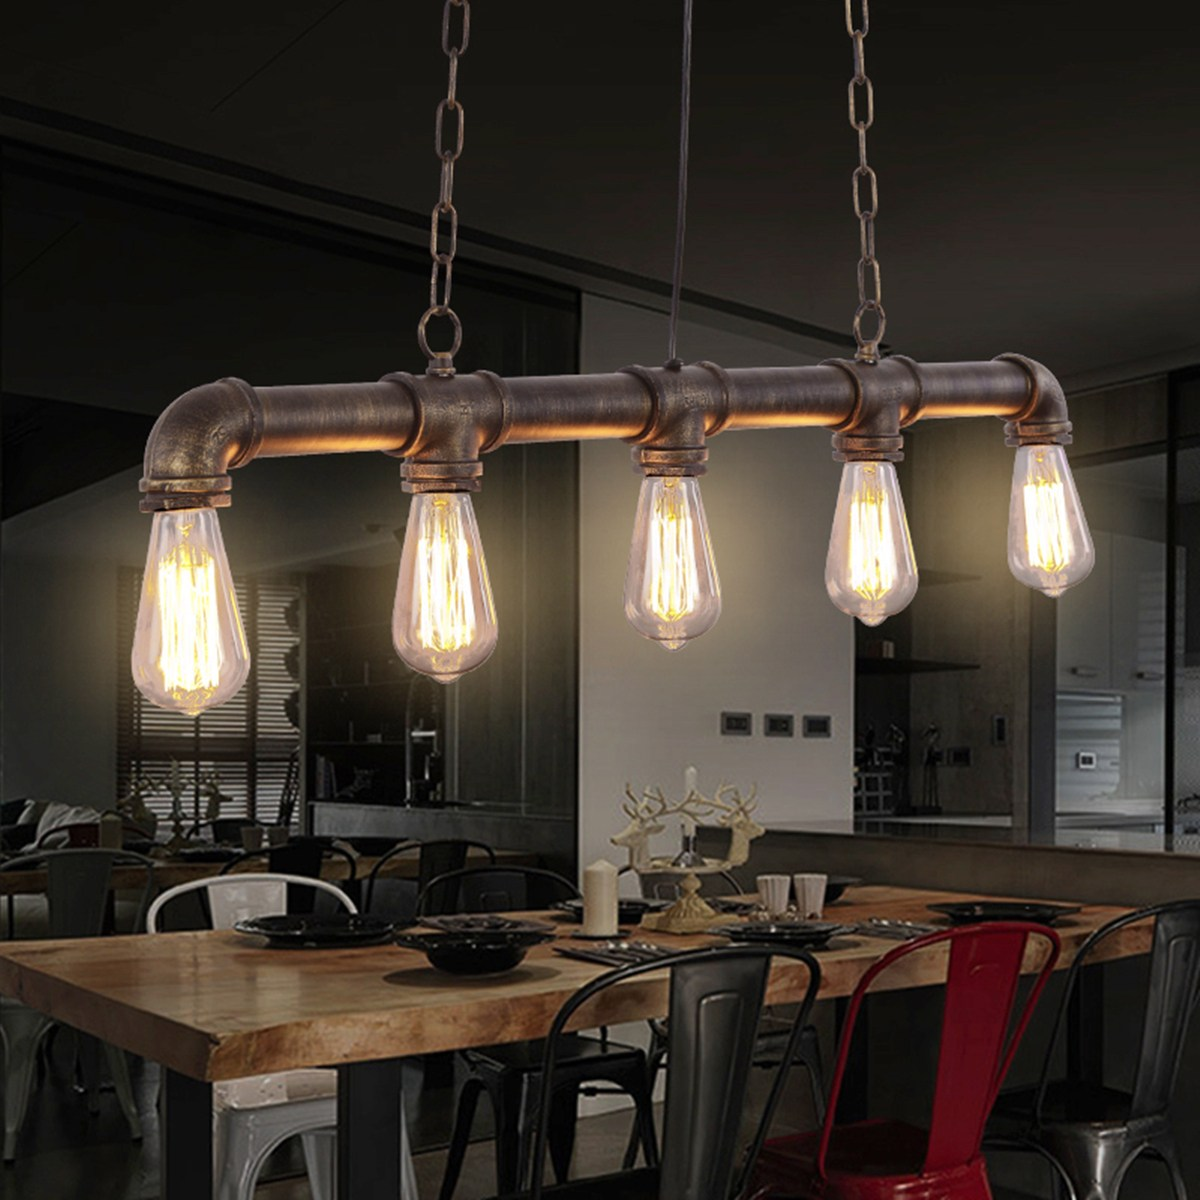 5 Heads Loft Retro Pendant Lamp Industrial Vintage Water Pipe Pendant Lamp E27 Hanging Light for Bar Restaurant Dining Room new style vintage e27 pendant lights industrial retro pendant lamps dining room lamp restaurant bar counter attic lighting